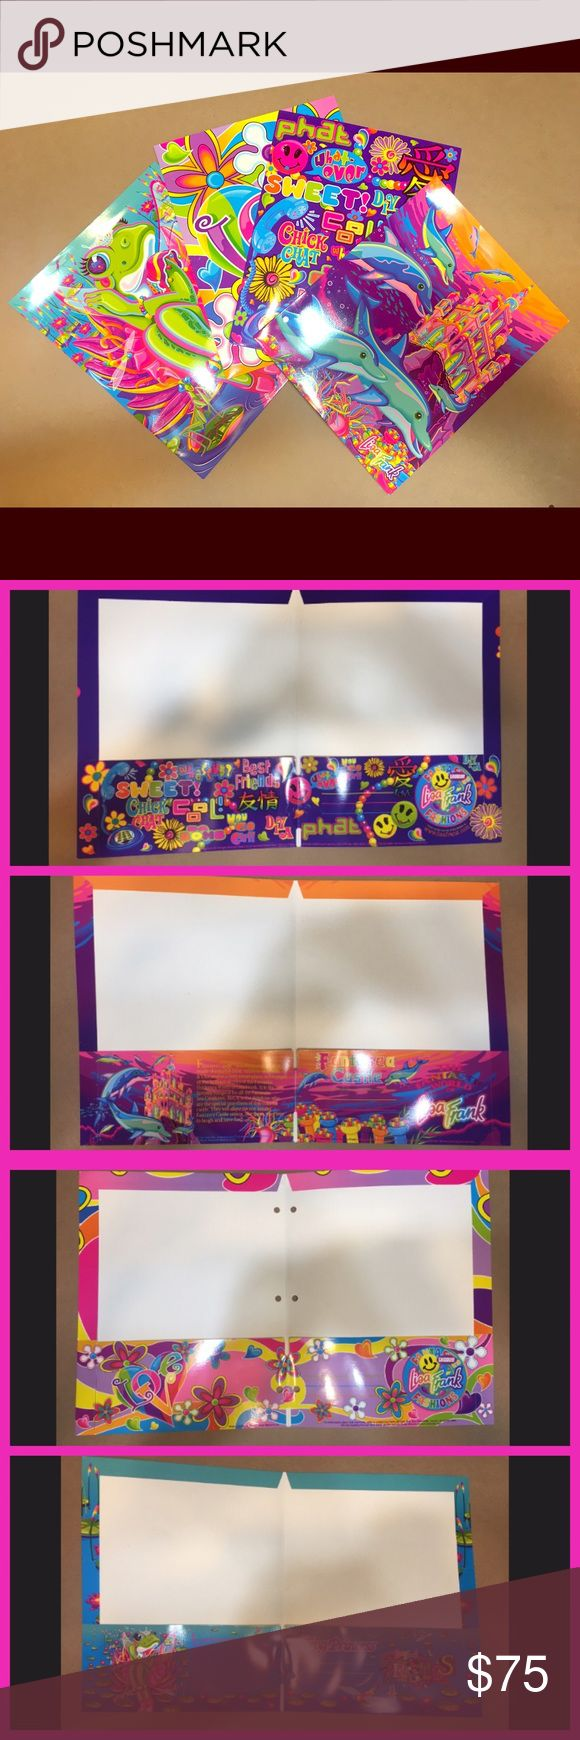 🌈RARE🌈 Vintage Lisa Frank Bundle Set four, 90's Lisa Frank folders. These are brand new with the holes in tact. These are rare, vintage prints that are no longer in production. Accessories